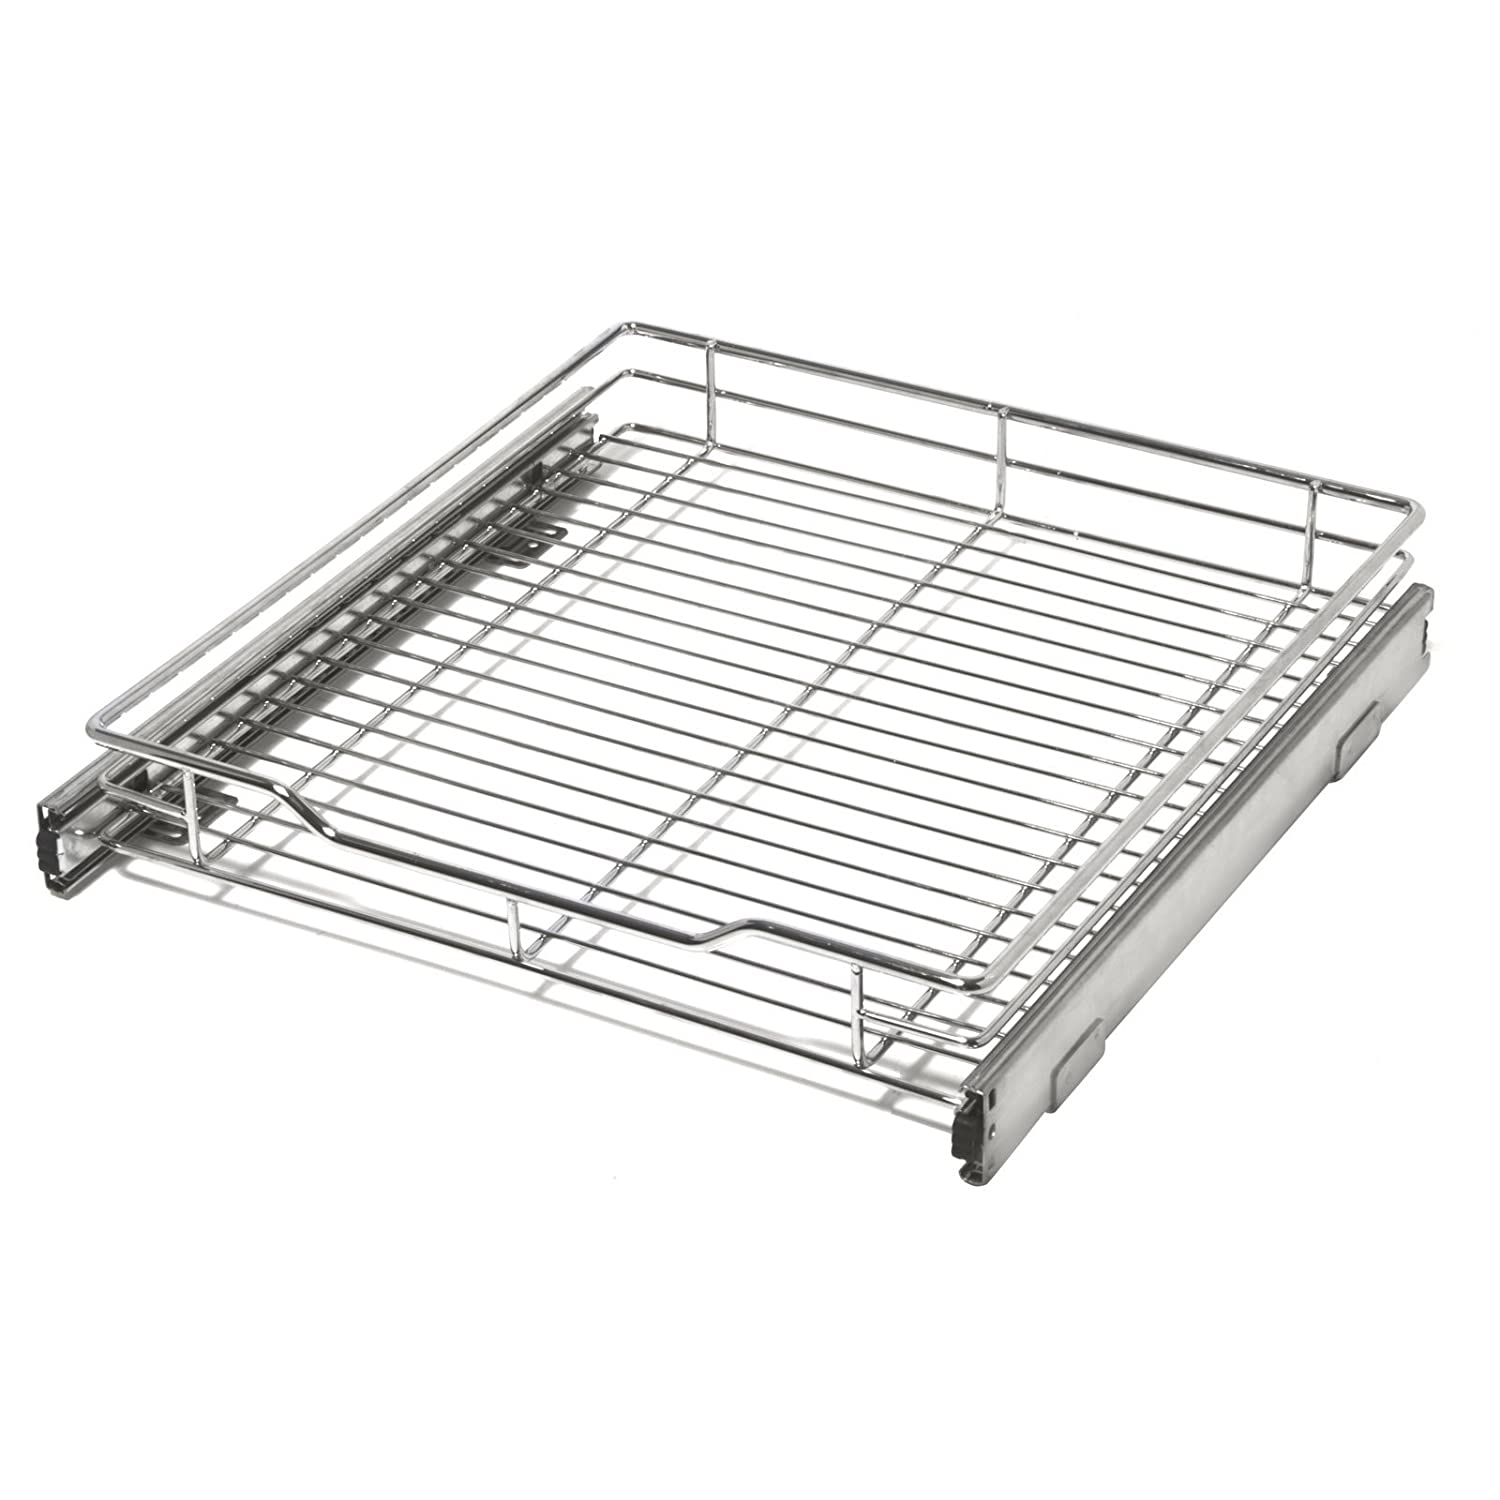 Smart Design 1-Tier Shelf Expandable Roll Out Cabinet Organizer w/Mounting Hardware - Medium - Steel Metal - Holds 100 lbs. - Cabinets & Cookware Items - Kitchen (18-35 x 14.5 Inch) [Chrome]